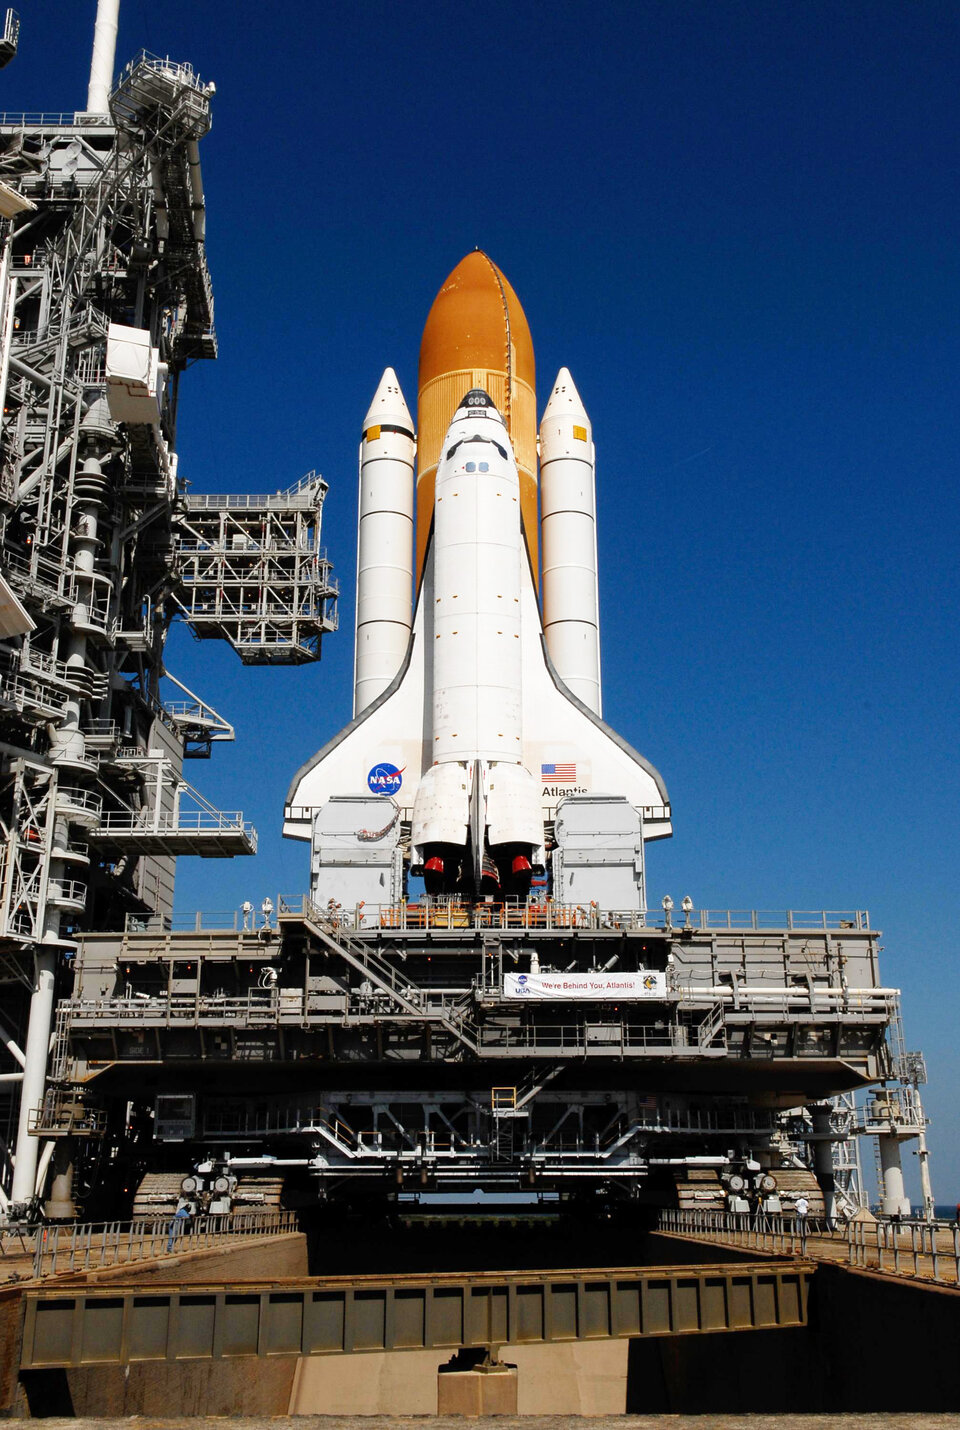 Columbus is set to launch on board Space Shuttle Atlantis on 6 December